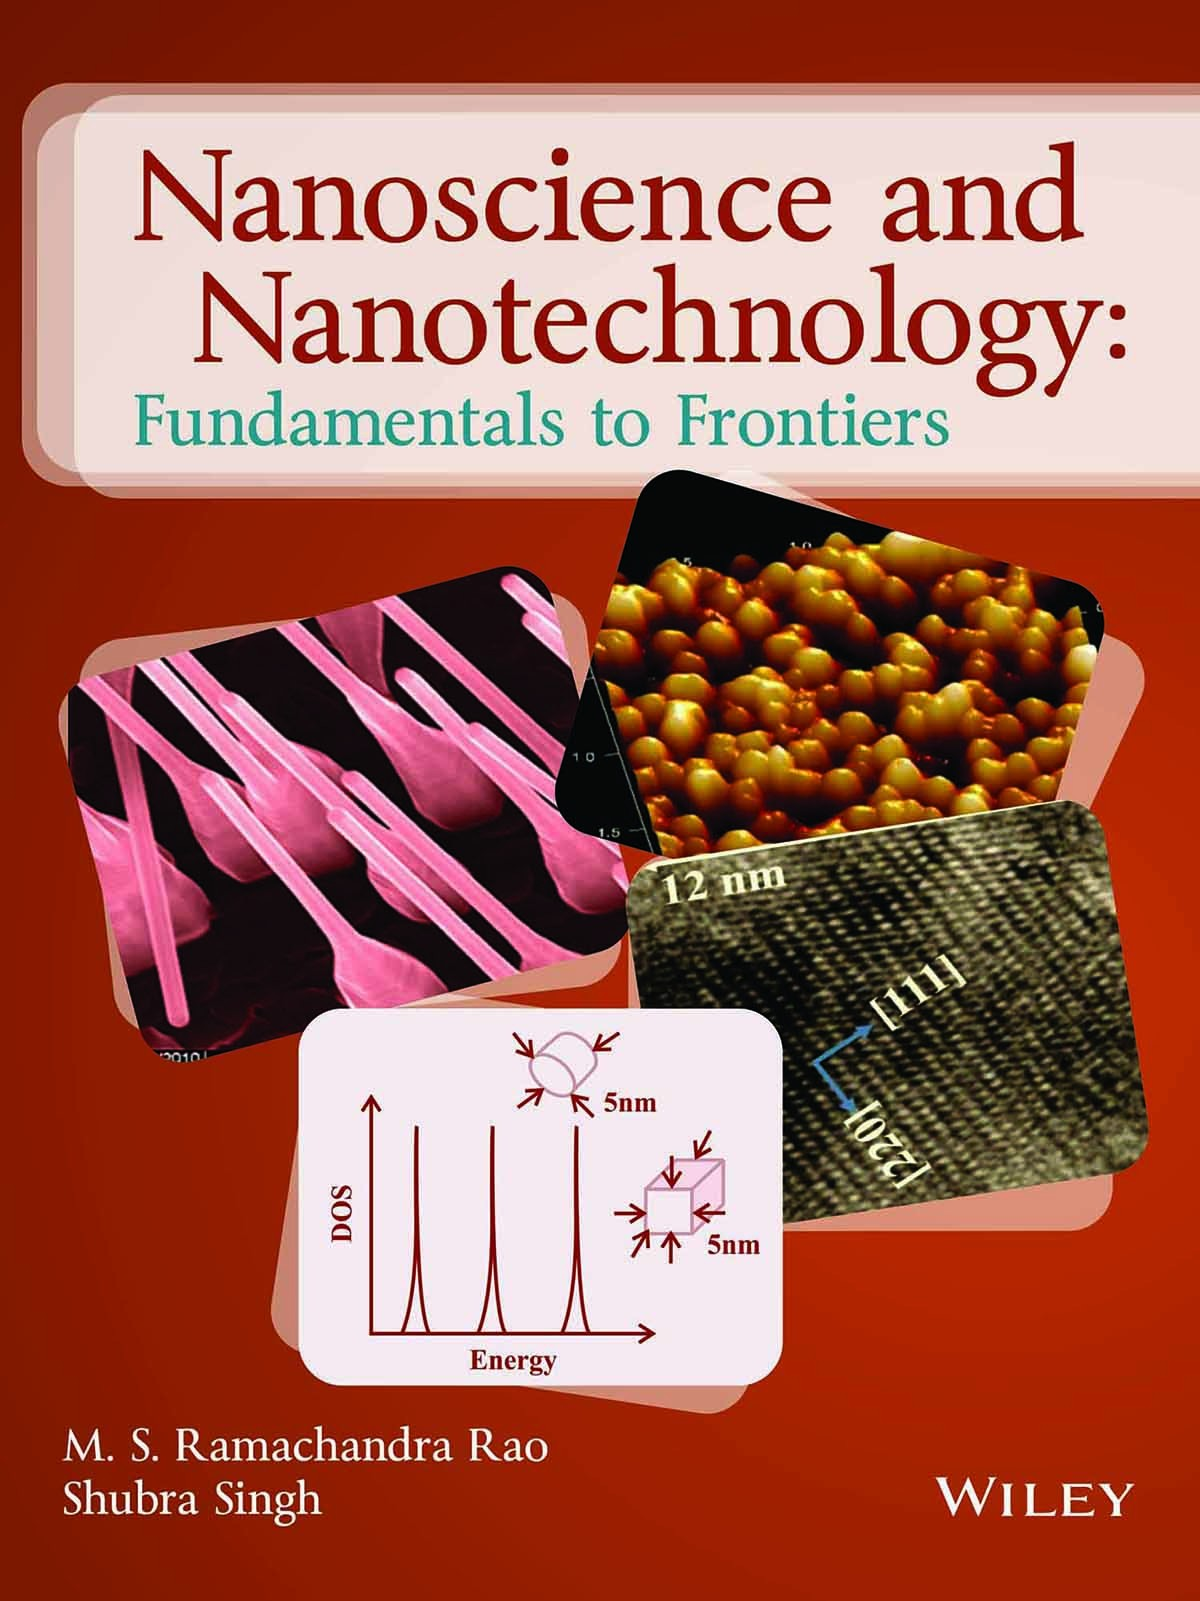 nanoscience-and-nanotechnology-fundamentals-to-frontiers